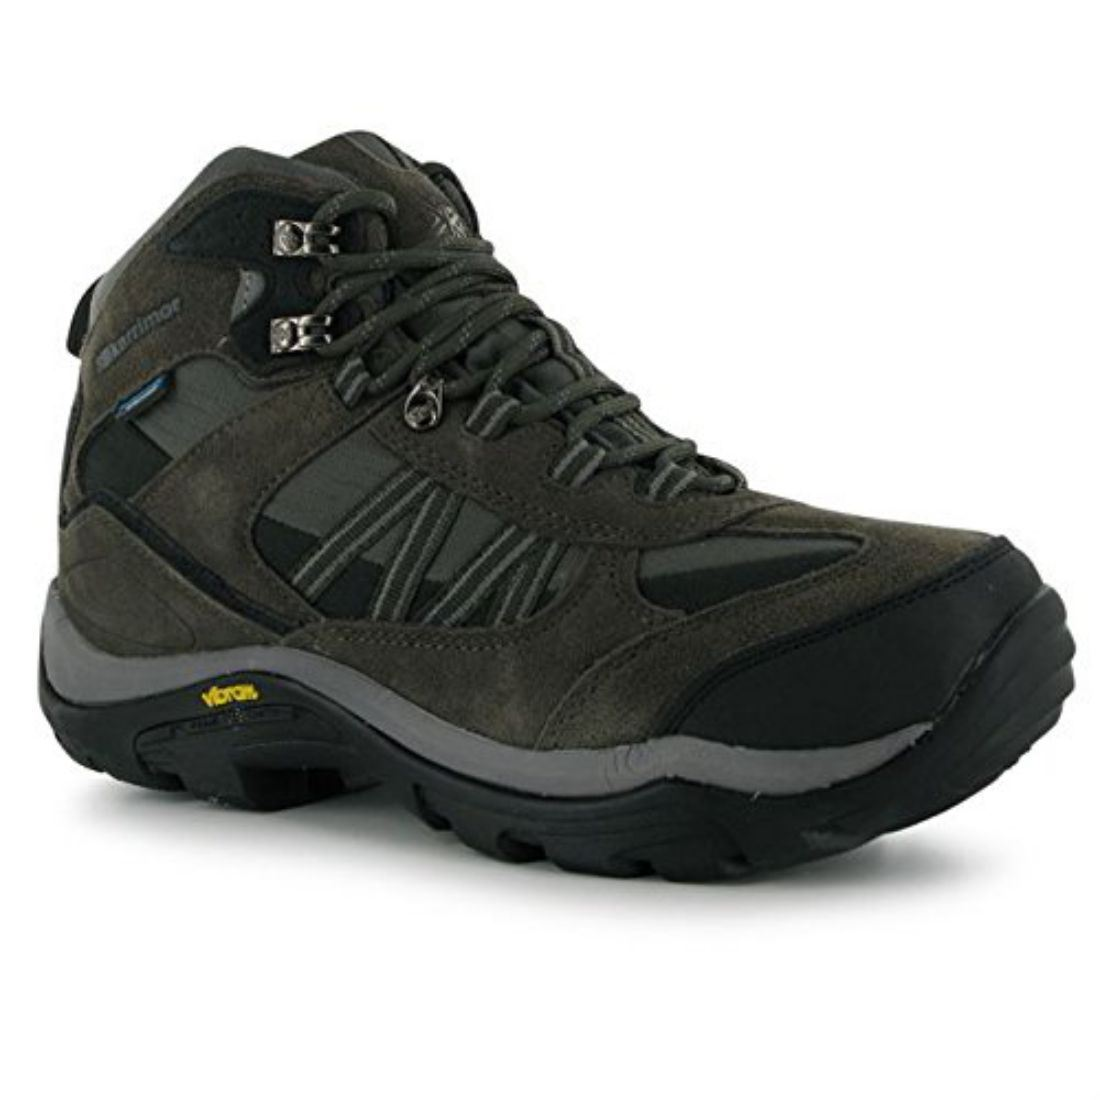 Buy Waterproof Walking Shoes